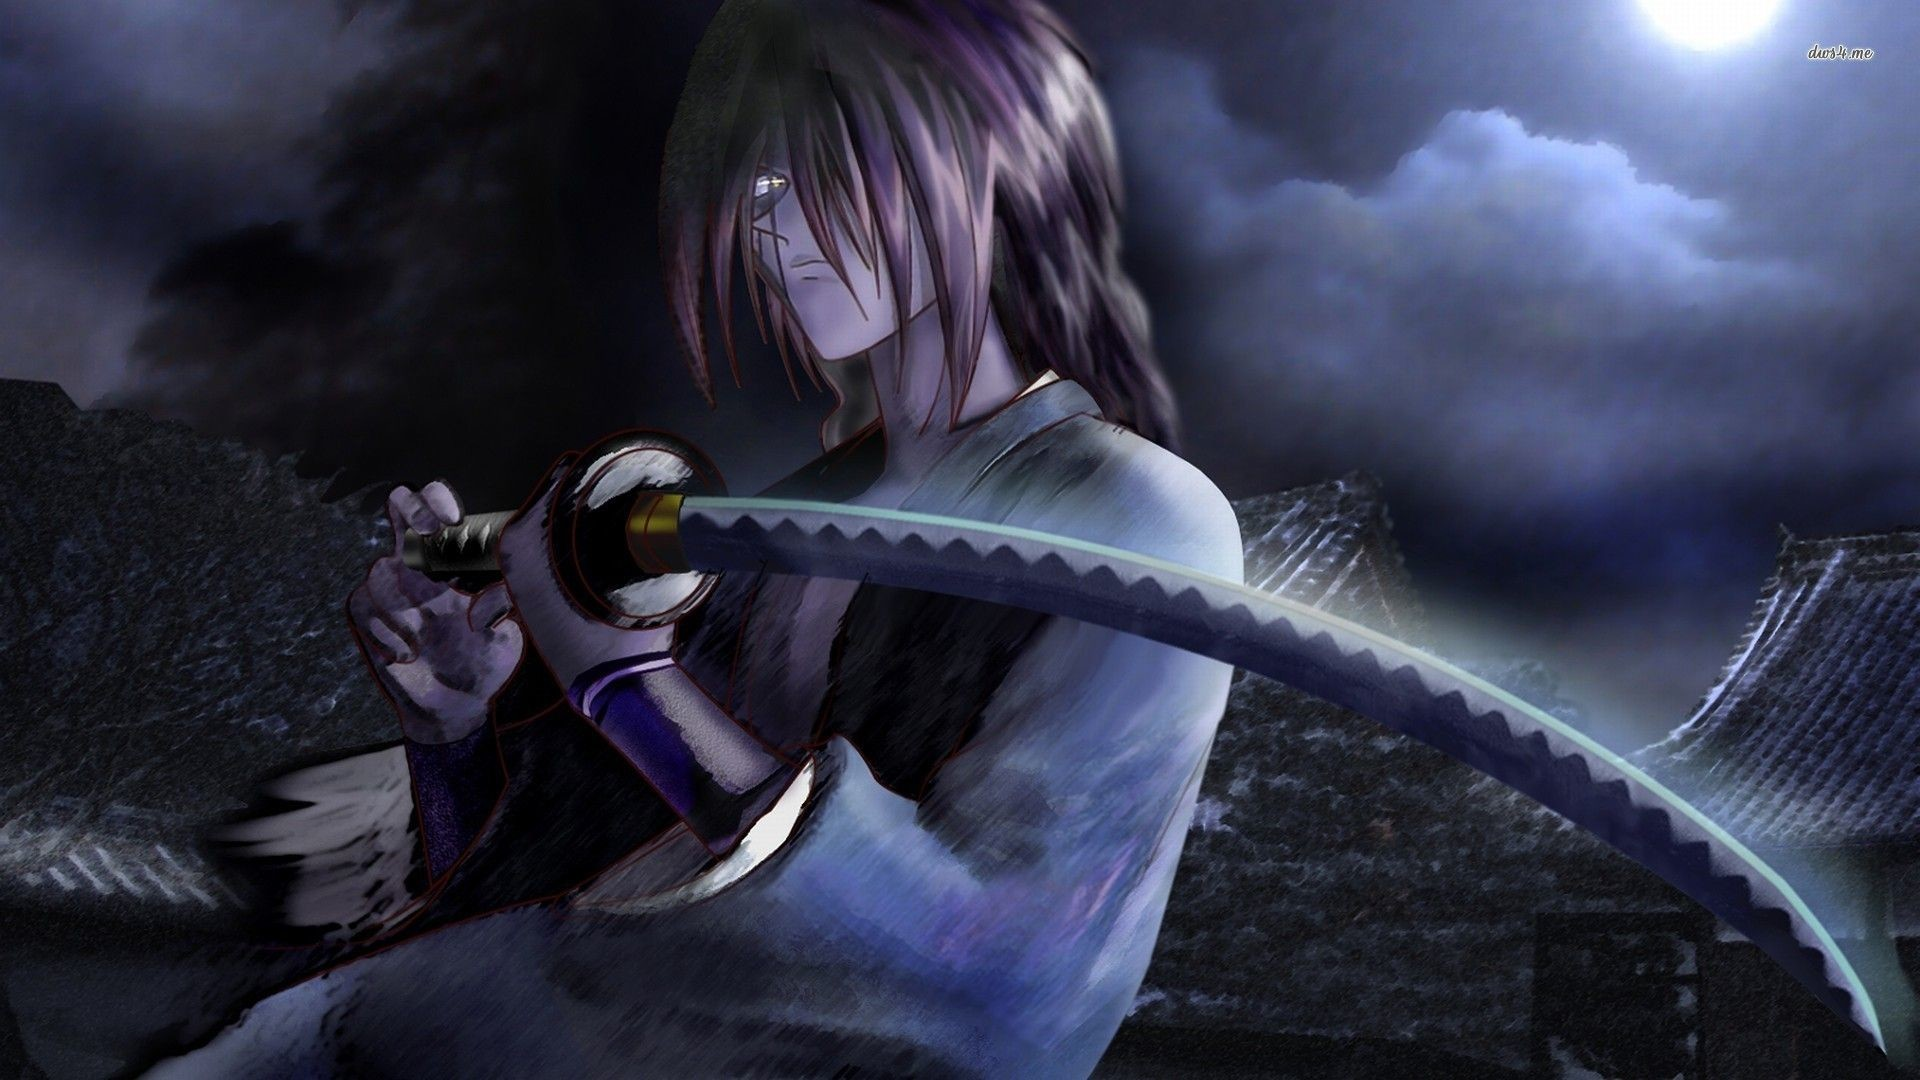 Samurai x wallpaper 50 images 1920x1080 samurai x wallpapers 1920x1080 px nmgncp pc gallery hd wallpapers voltagebd Images